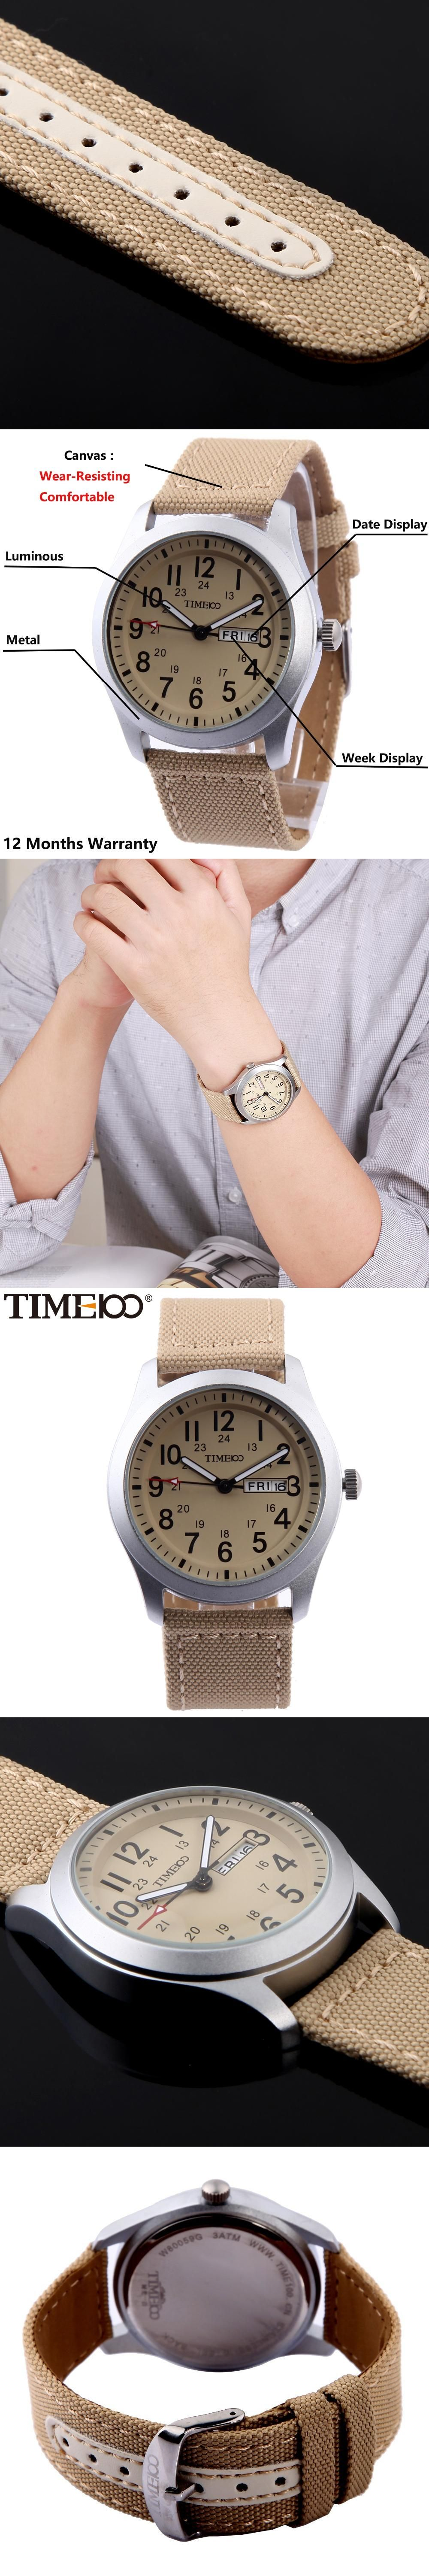 simple unique larger corlorful product watches strap new colorful unisex image see arrival canvas fancy fashion design chaxigo